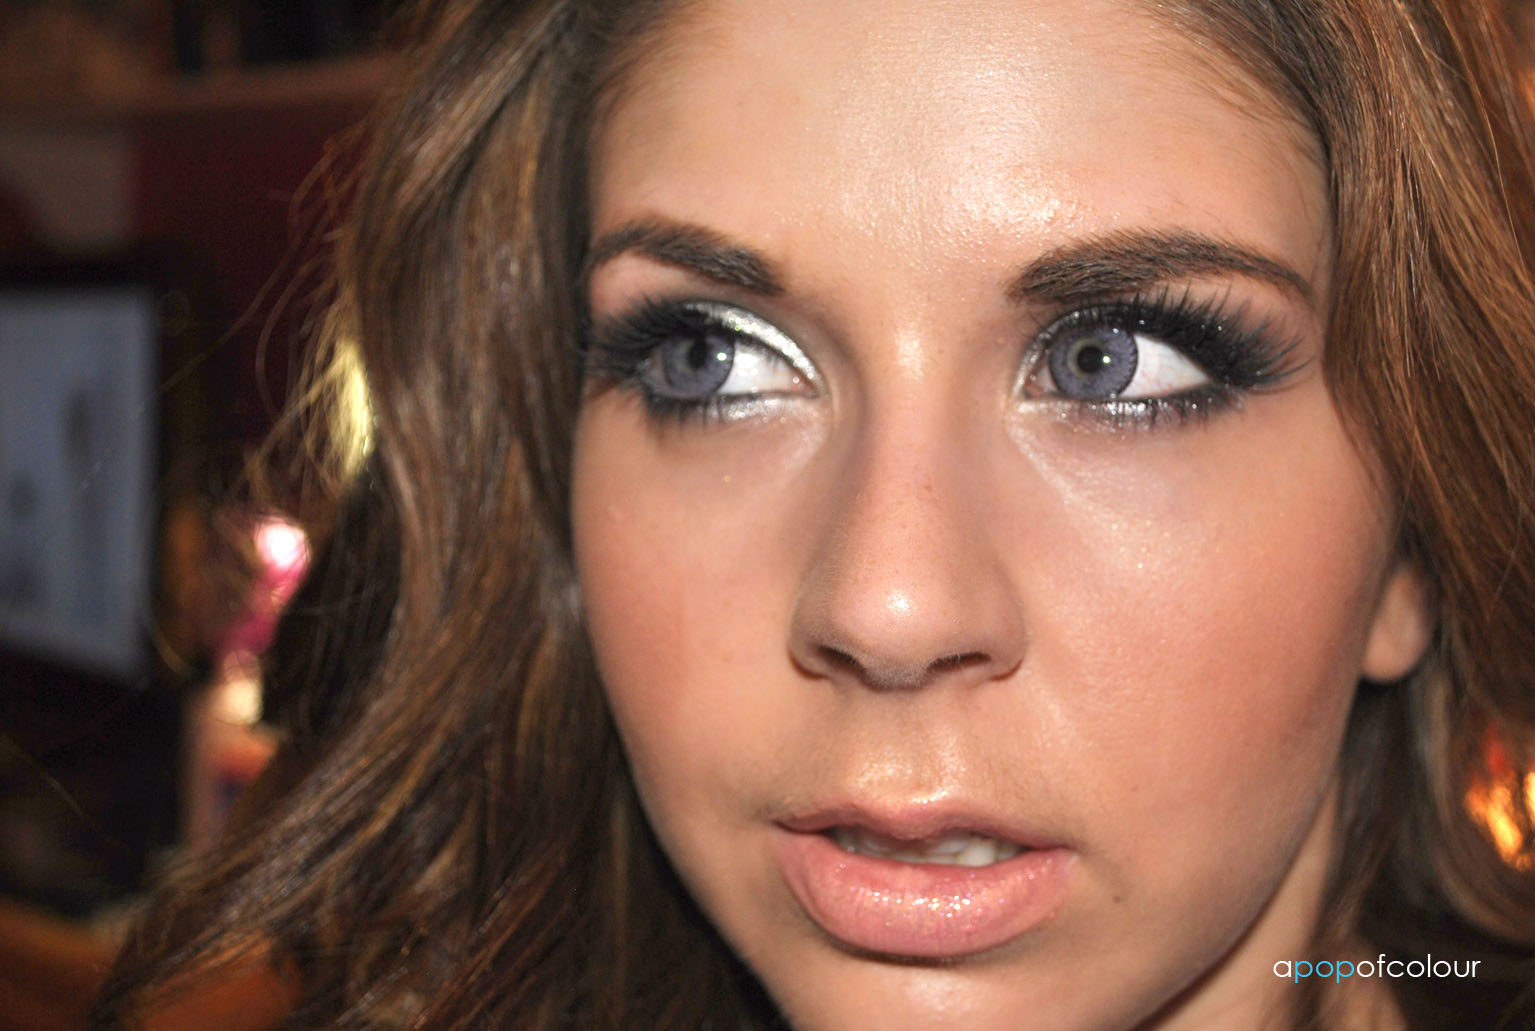 i thought i would put together some looks which are easy to do this fairy makeup look is simple and can easily transcend into the holiday season if you